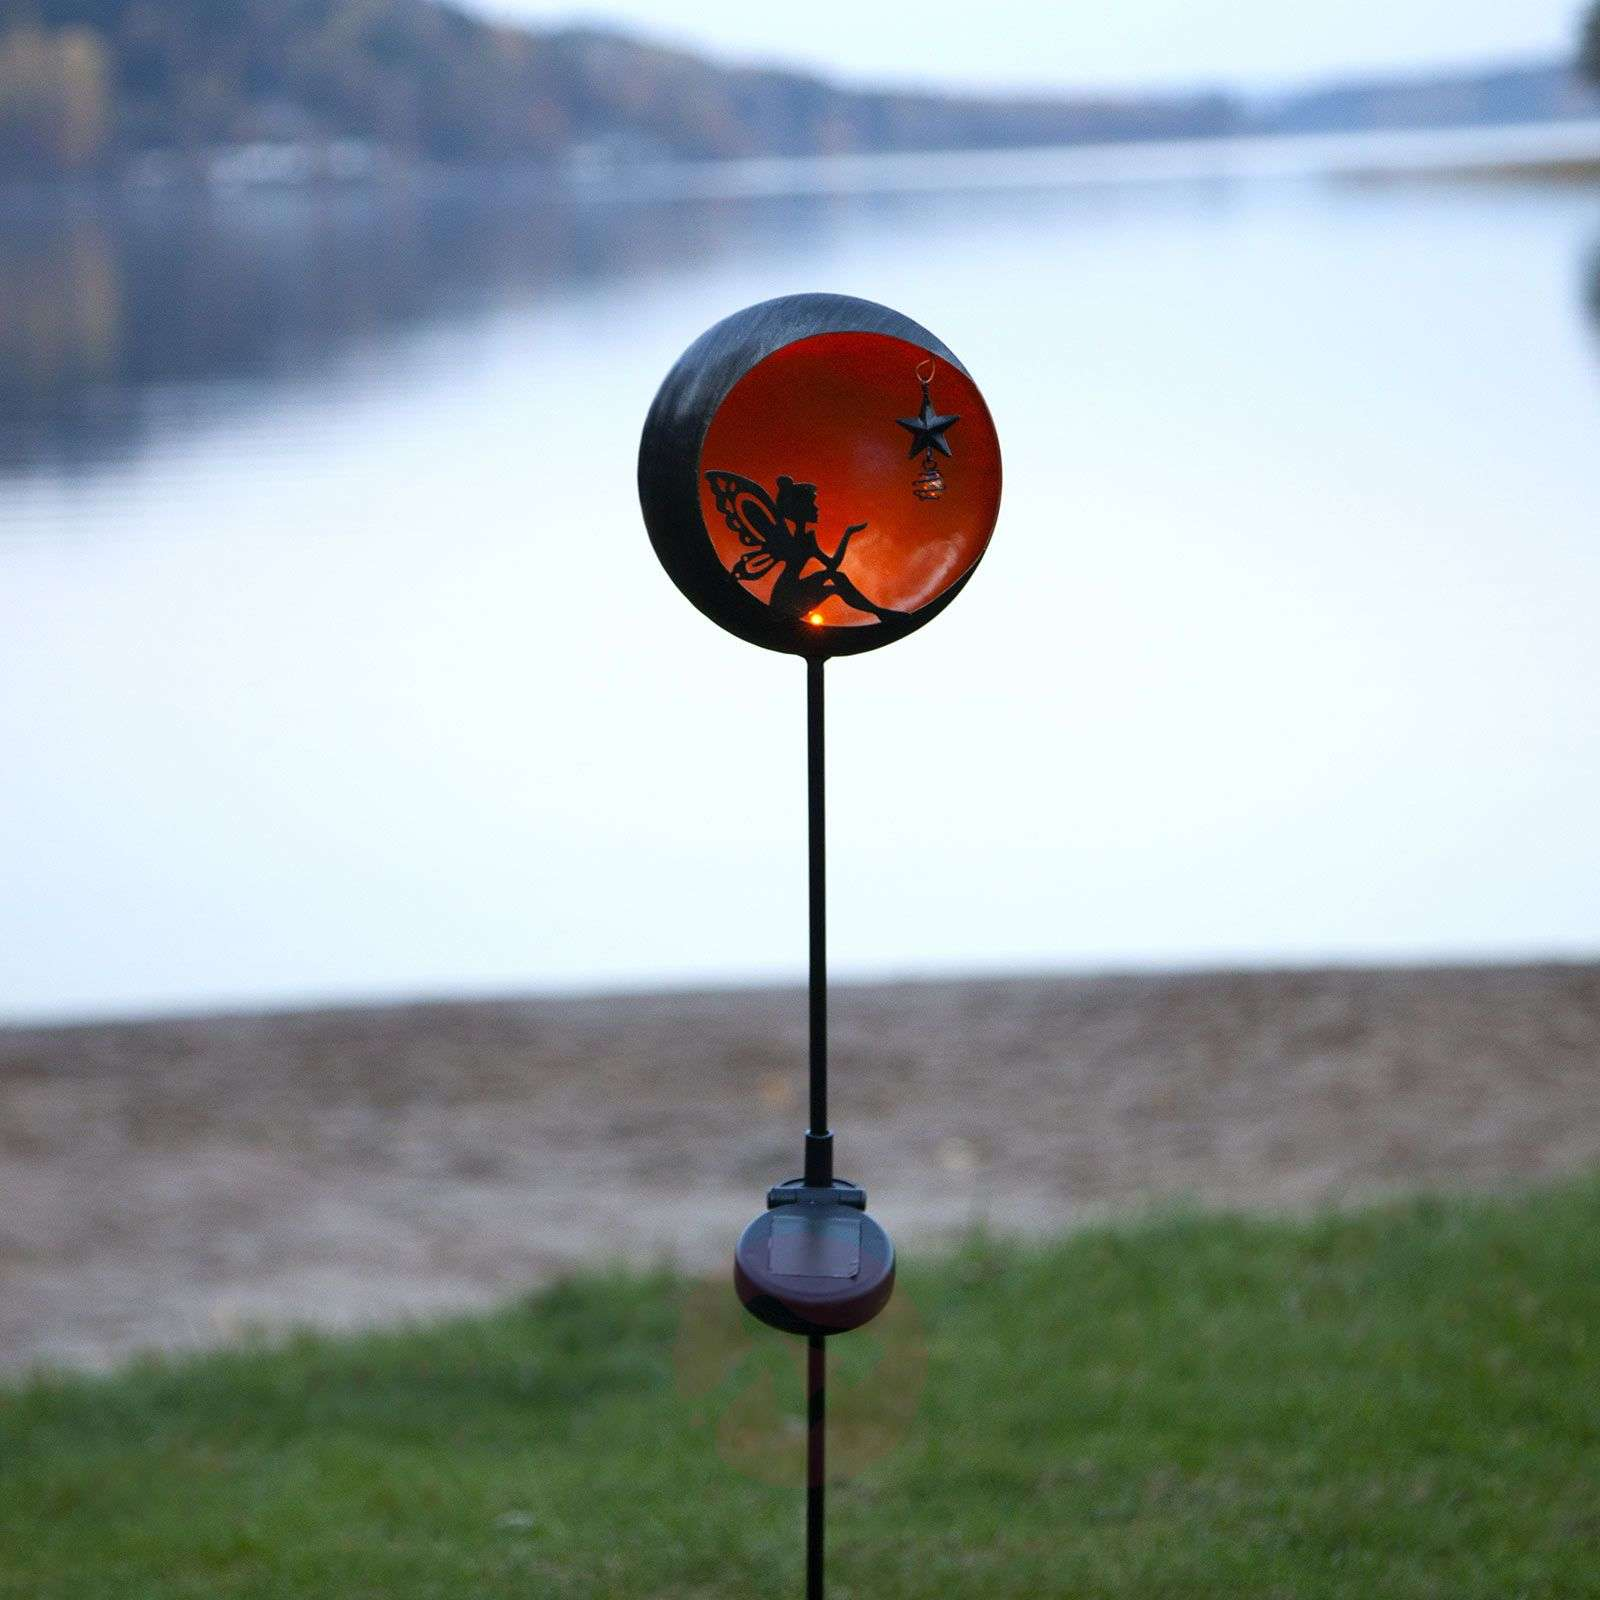 Lampe solaire LED Fairytale, orange-1523651-01